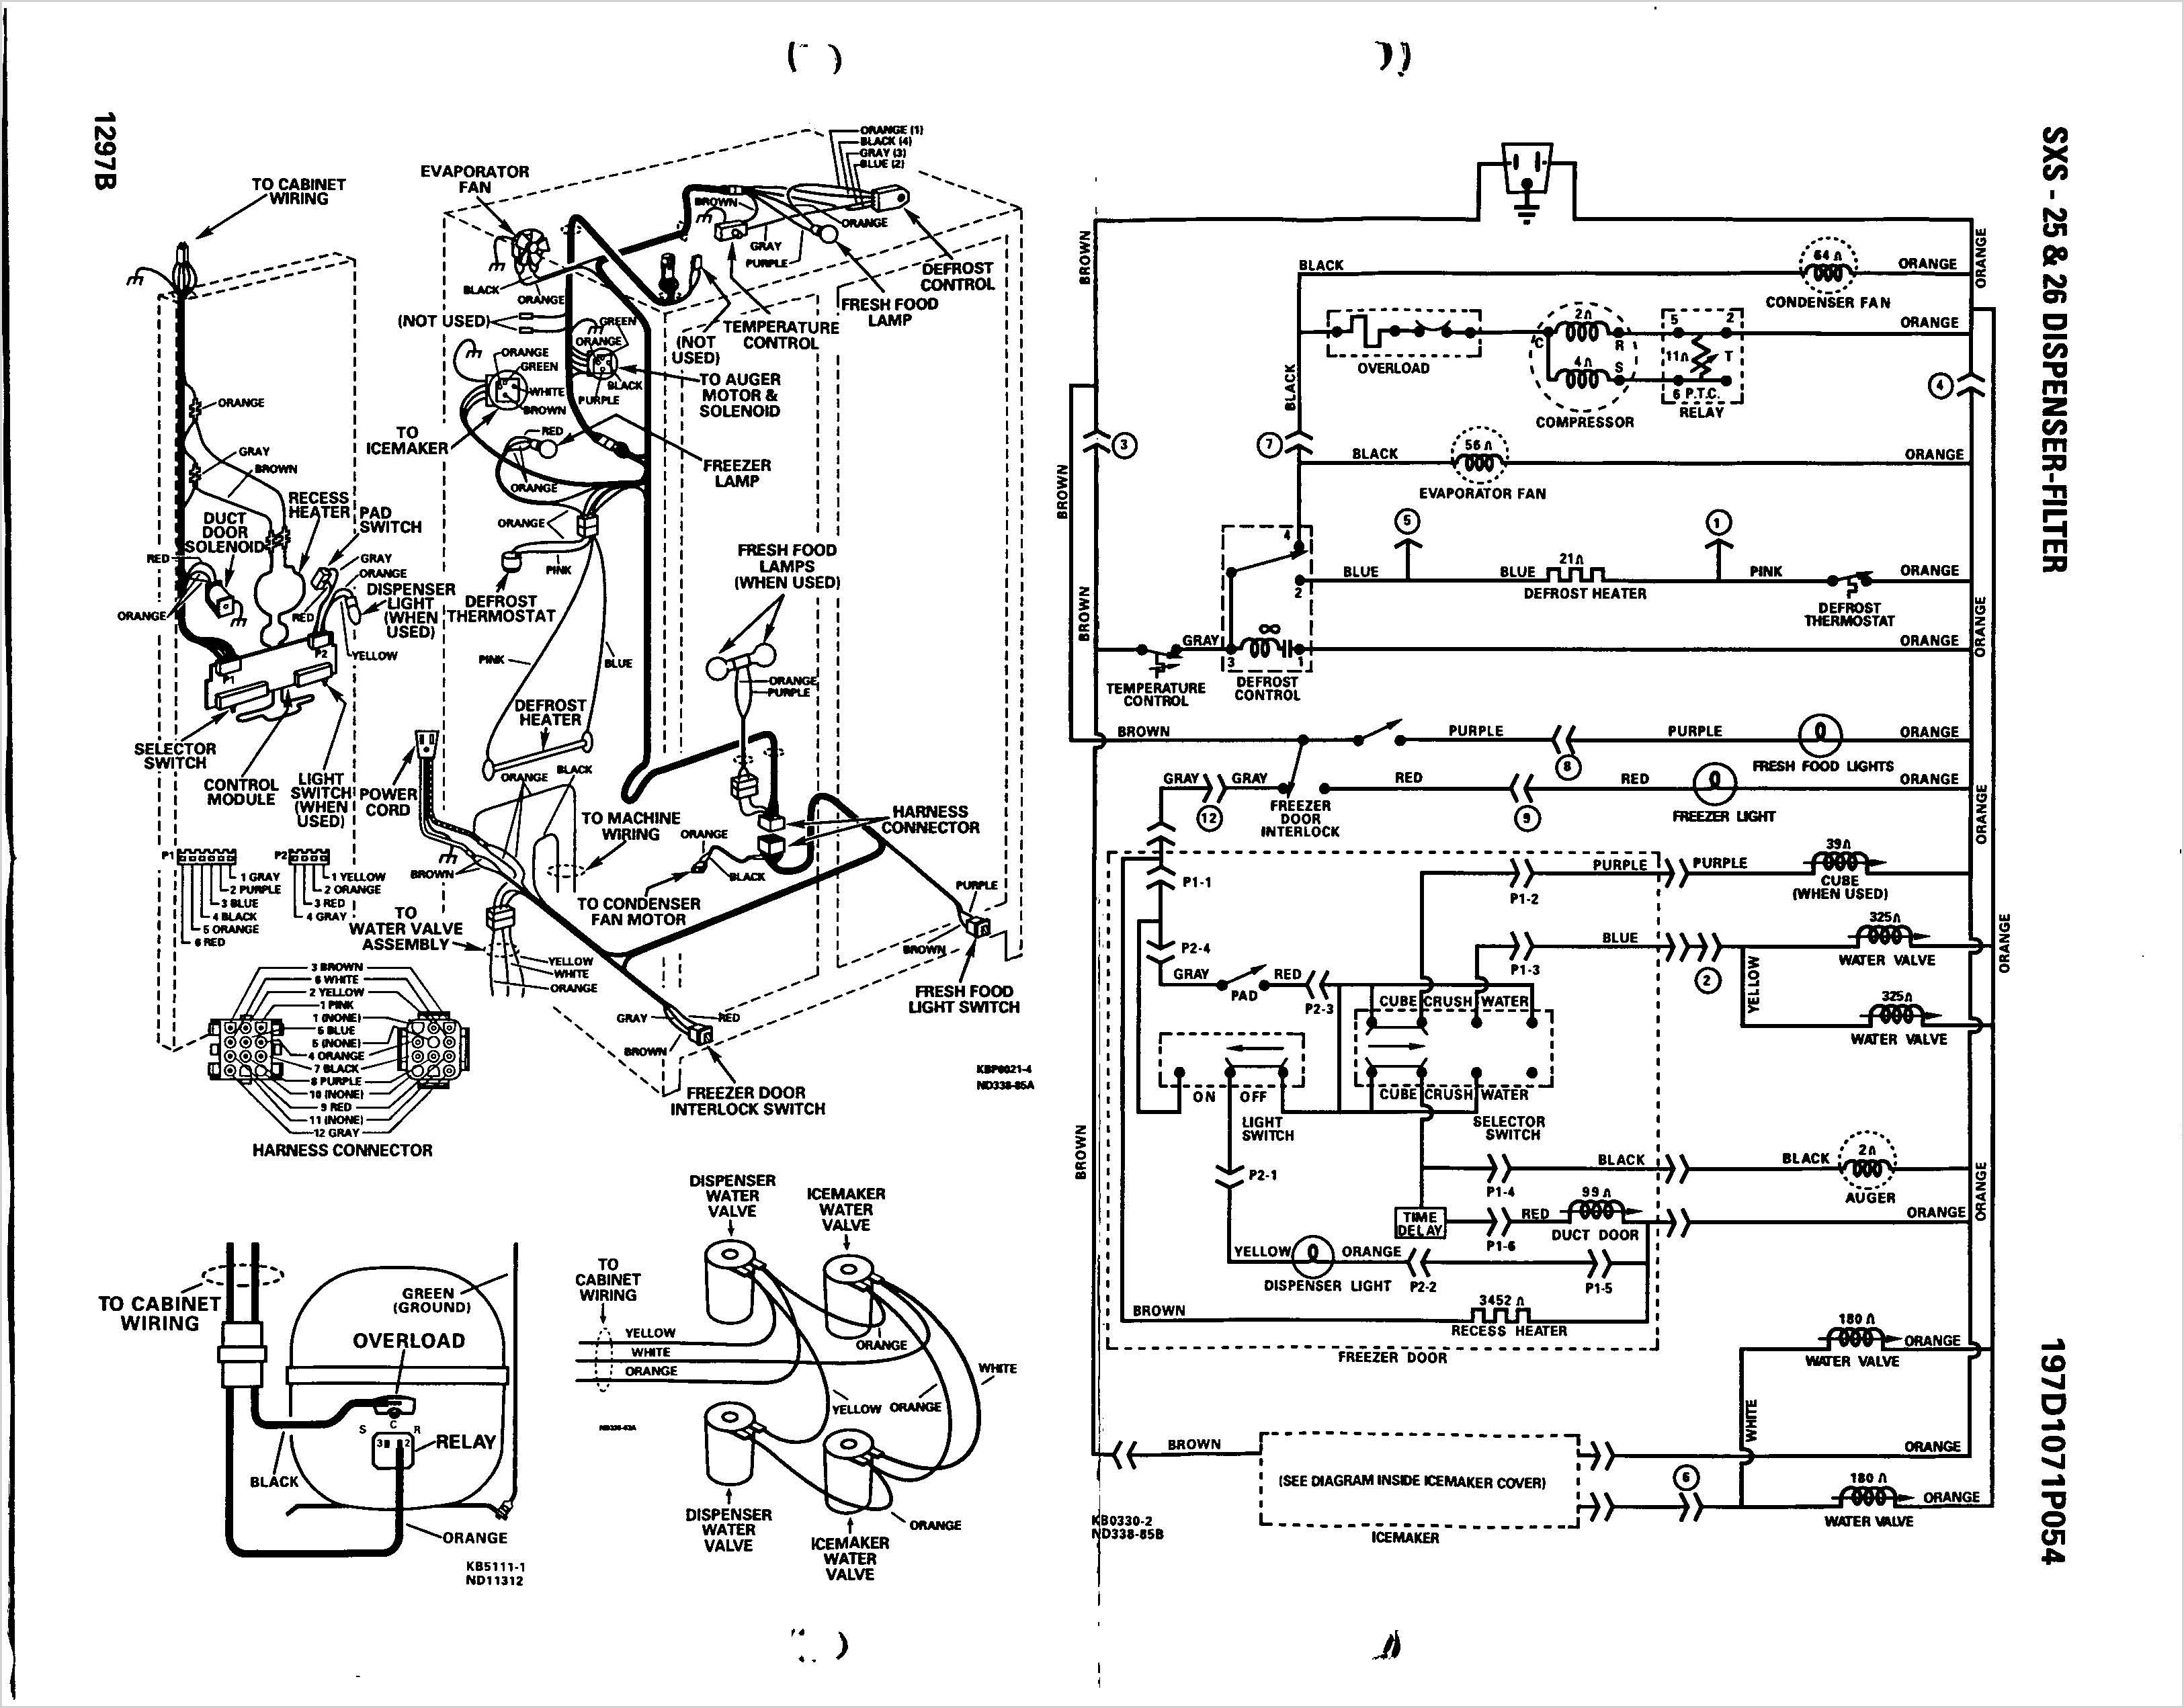 Wiring Diagram Ge Profile - Engine Mechanical Components on